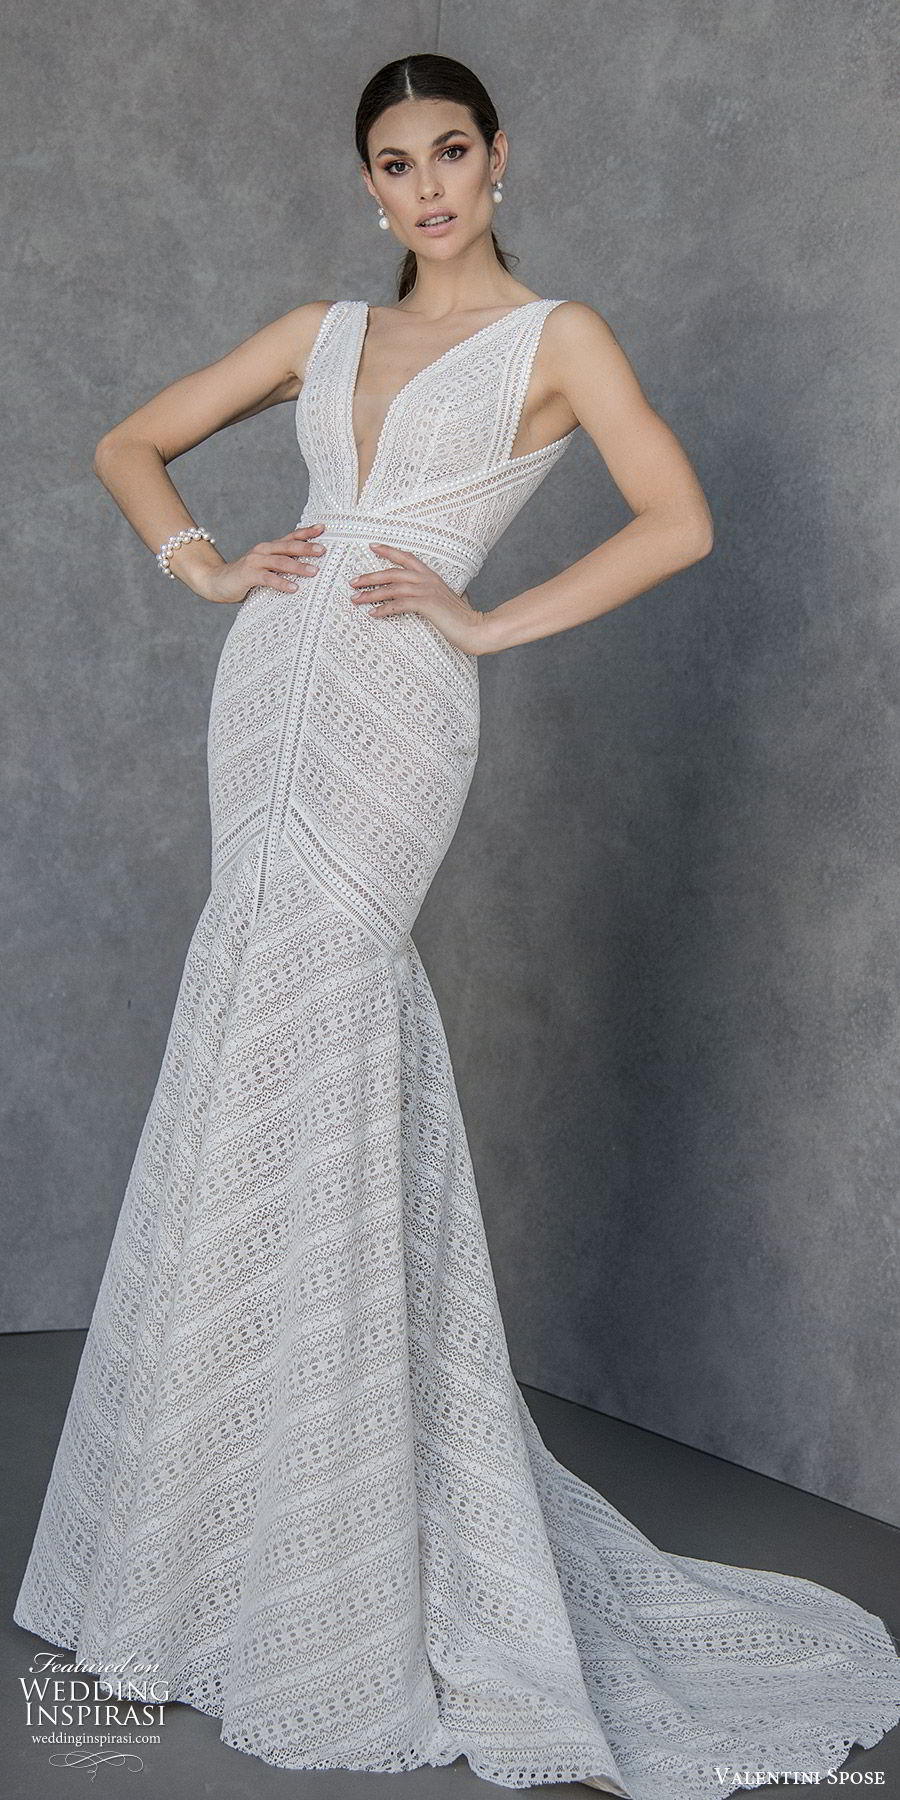 valentini spose spring 2020 bridal sleeveless thick straps deep v neckline fit flare mermaid wedding dress (5) v back chapel train modern boho chic mv